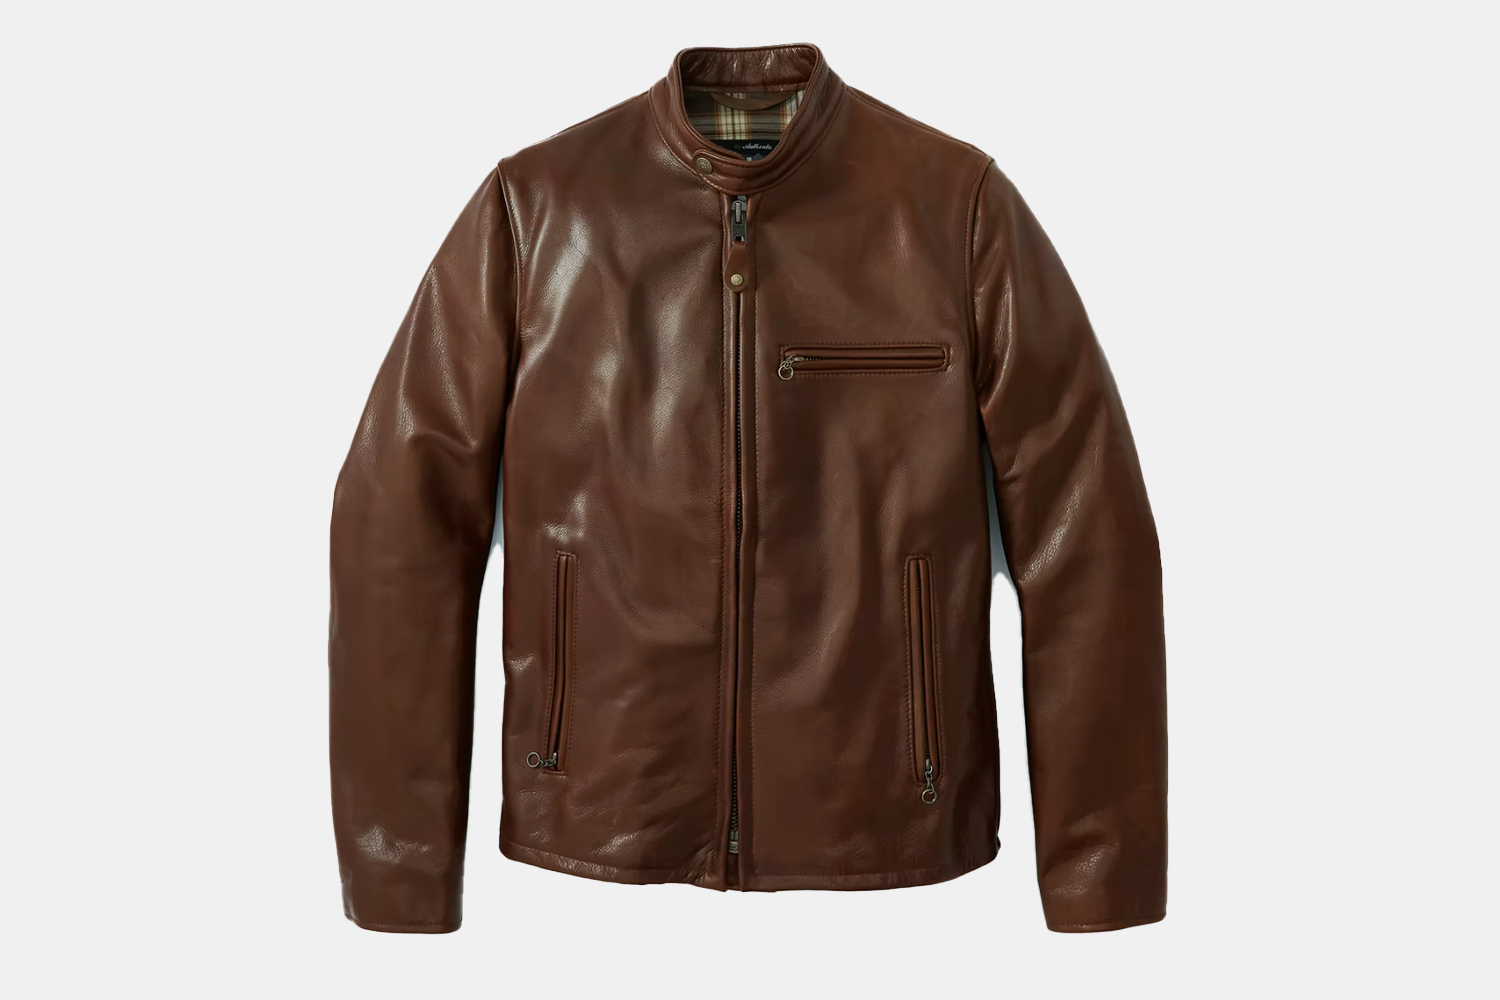 a textured leather jacket